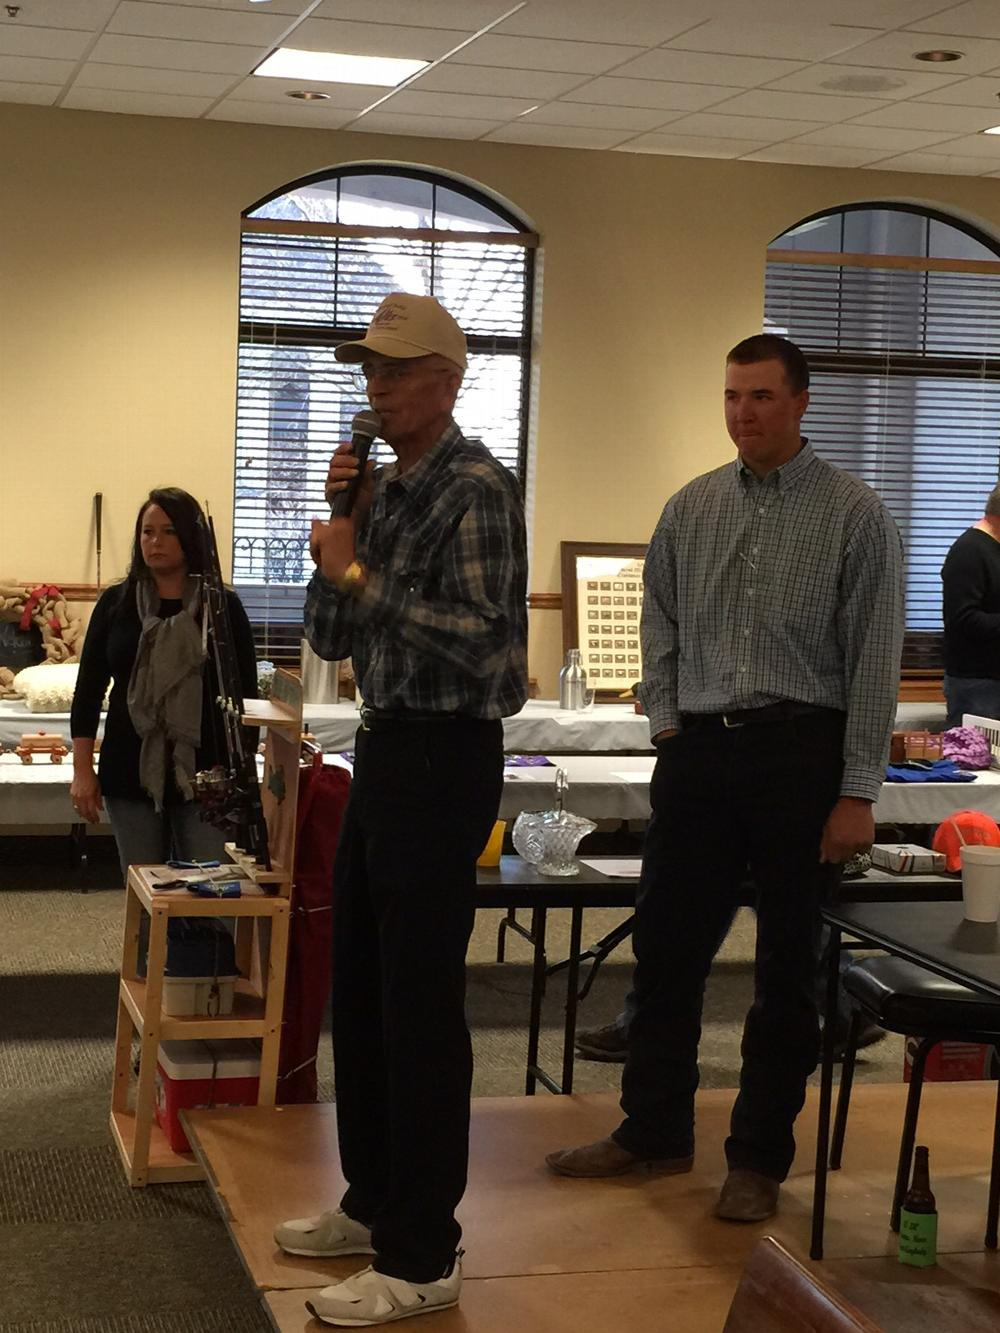 Kids Zoo Auction March 2015  Kami McClendon, Auctioneers Charlie Zink, PER and Adam Cummings, Tiler.  Over $15,000 was raised for the youth.  Thanks Clinton Elks!!!